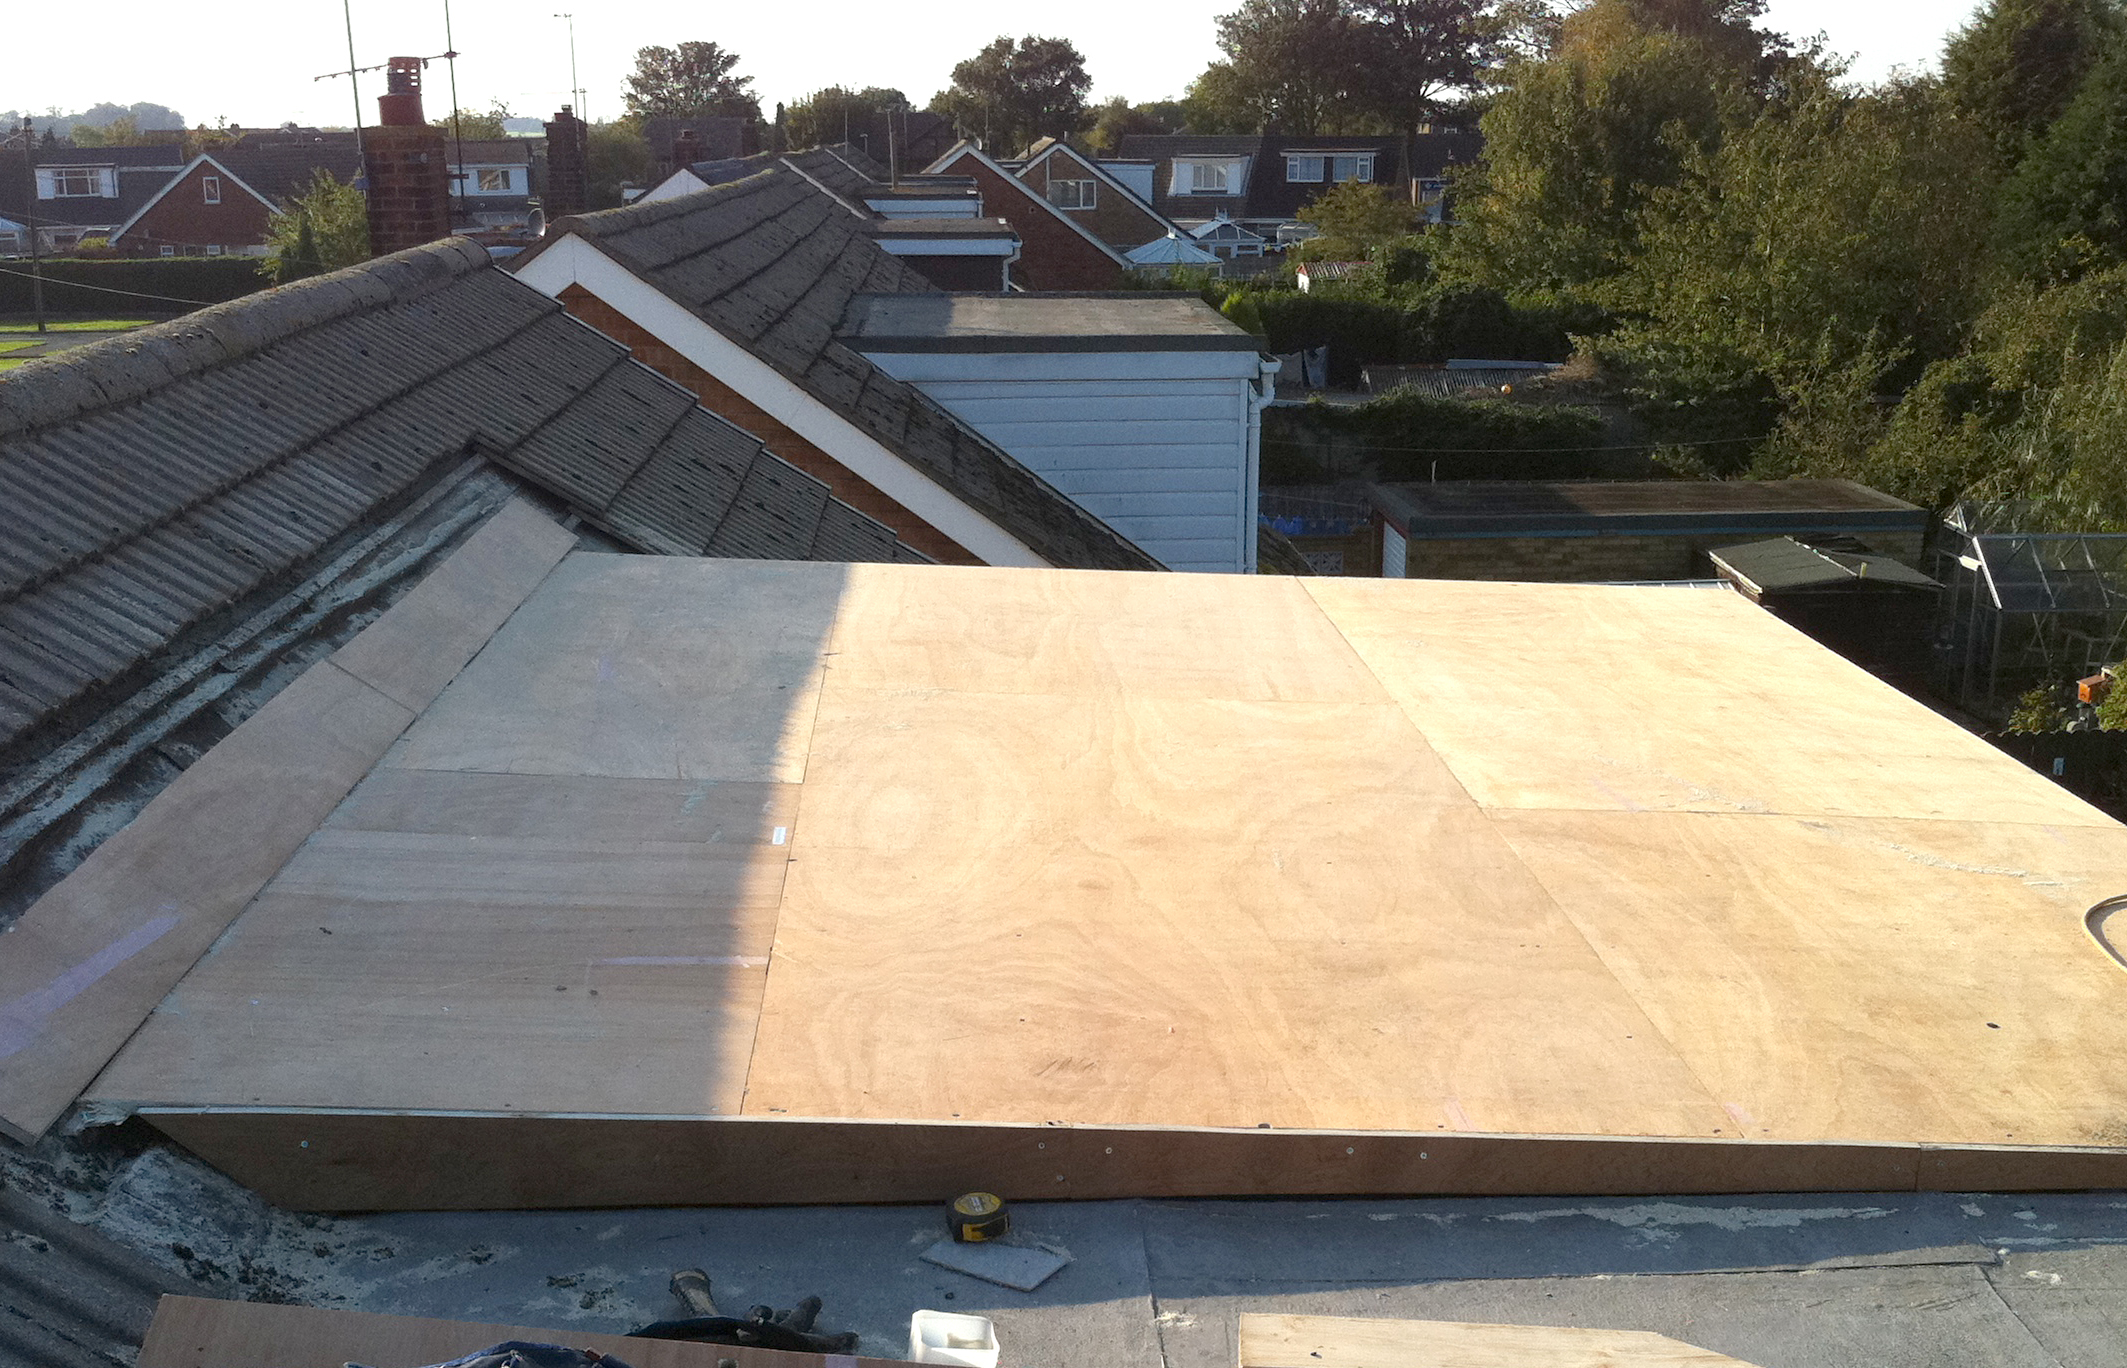 Flat Roofs West Design and Build © All Rights Reserved05.JPG